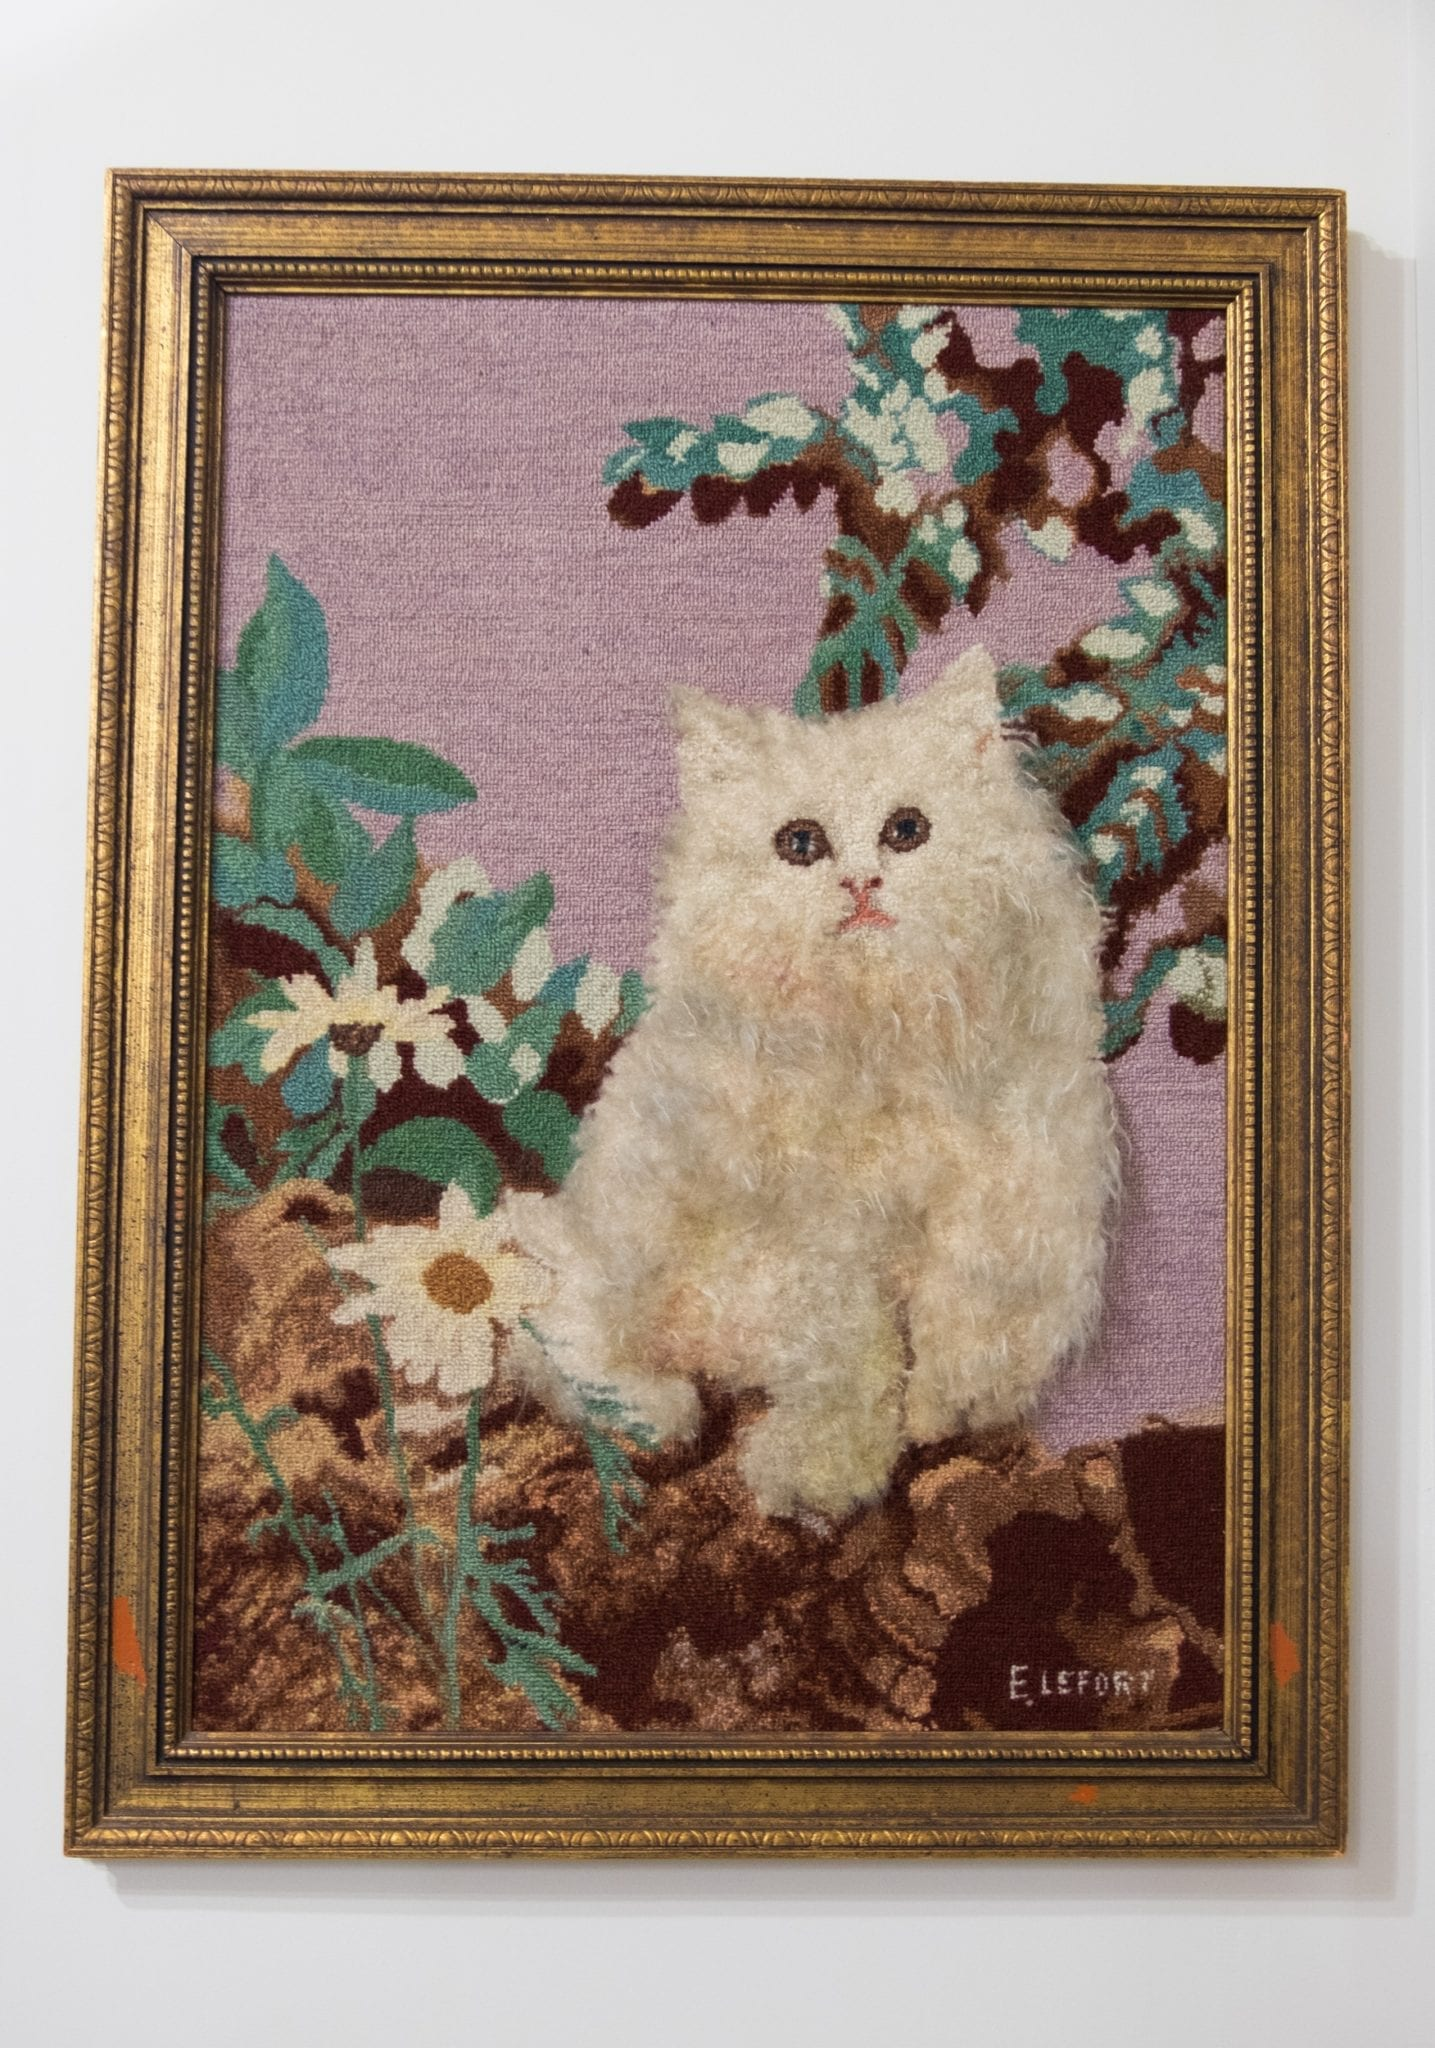 A hooked rug with a white Persian cat on it.